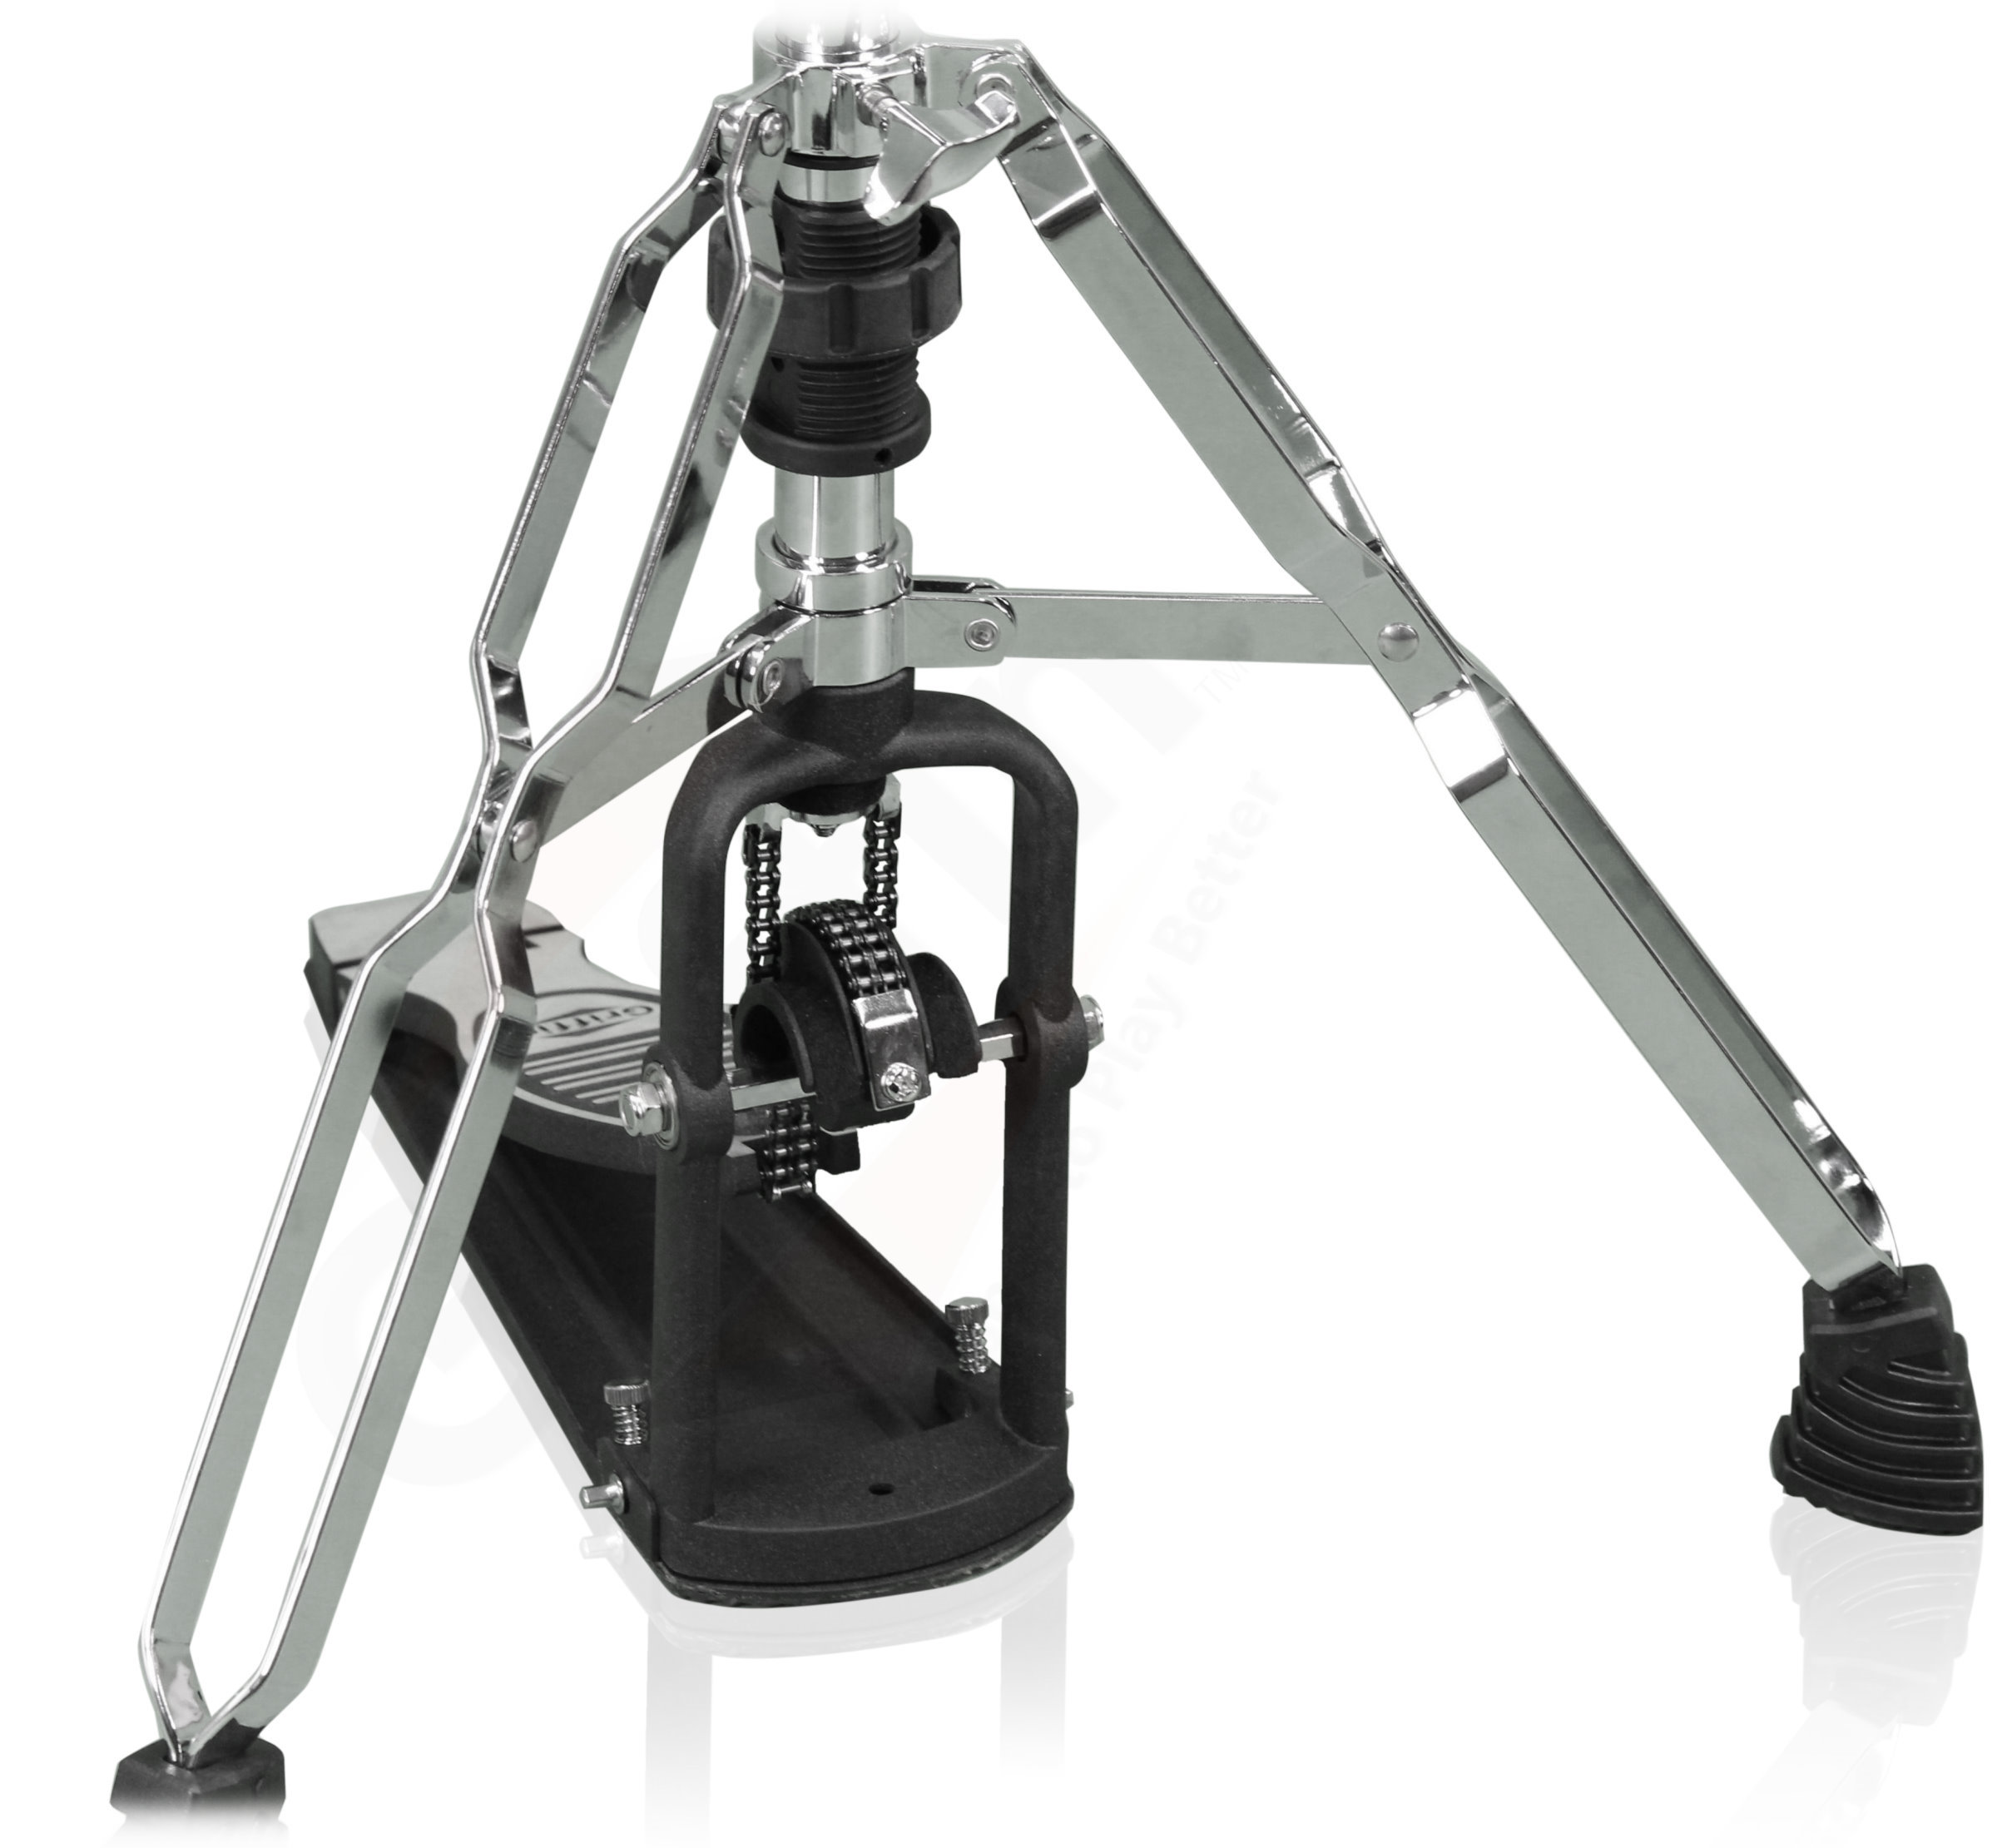 2 leg hi hat stand by griffin converts to no leg hihat pedal ace division inc. Black Bedroom Furniture Sets. Home Design Ideas